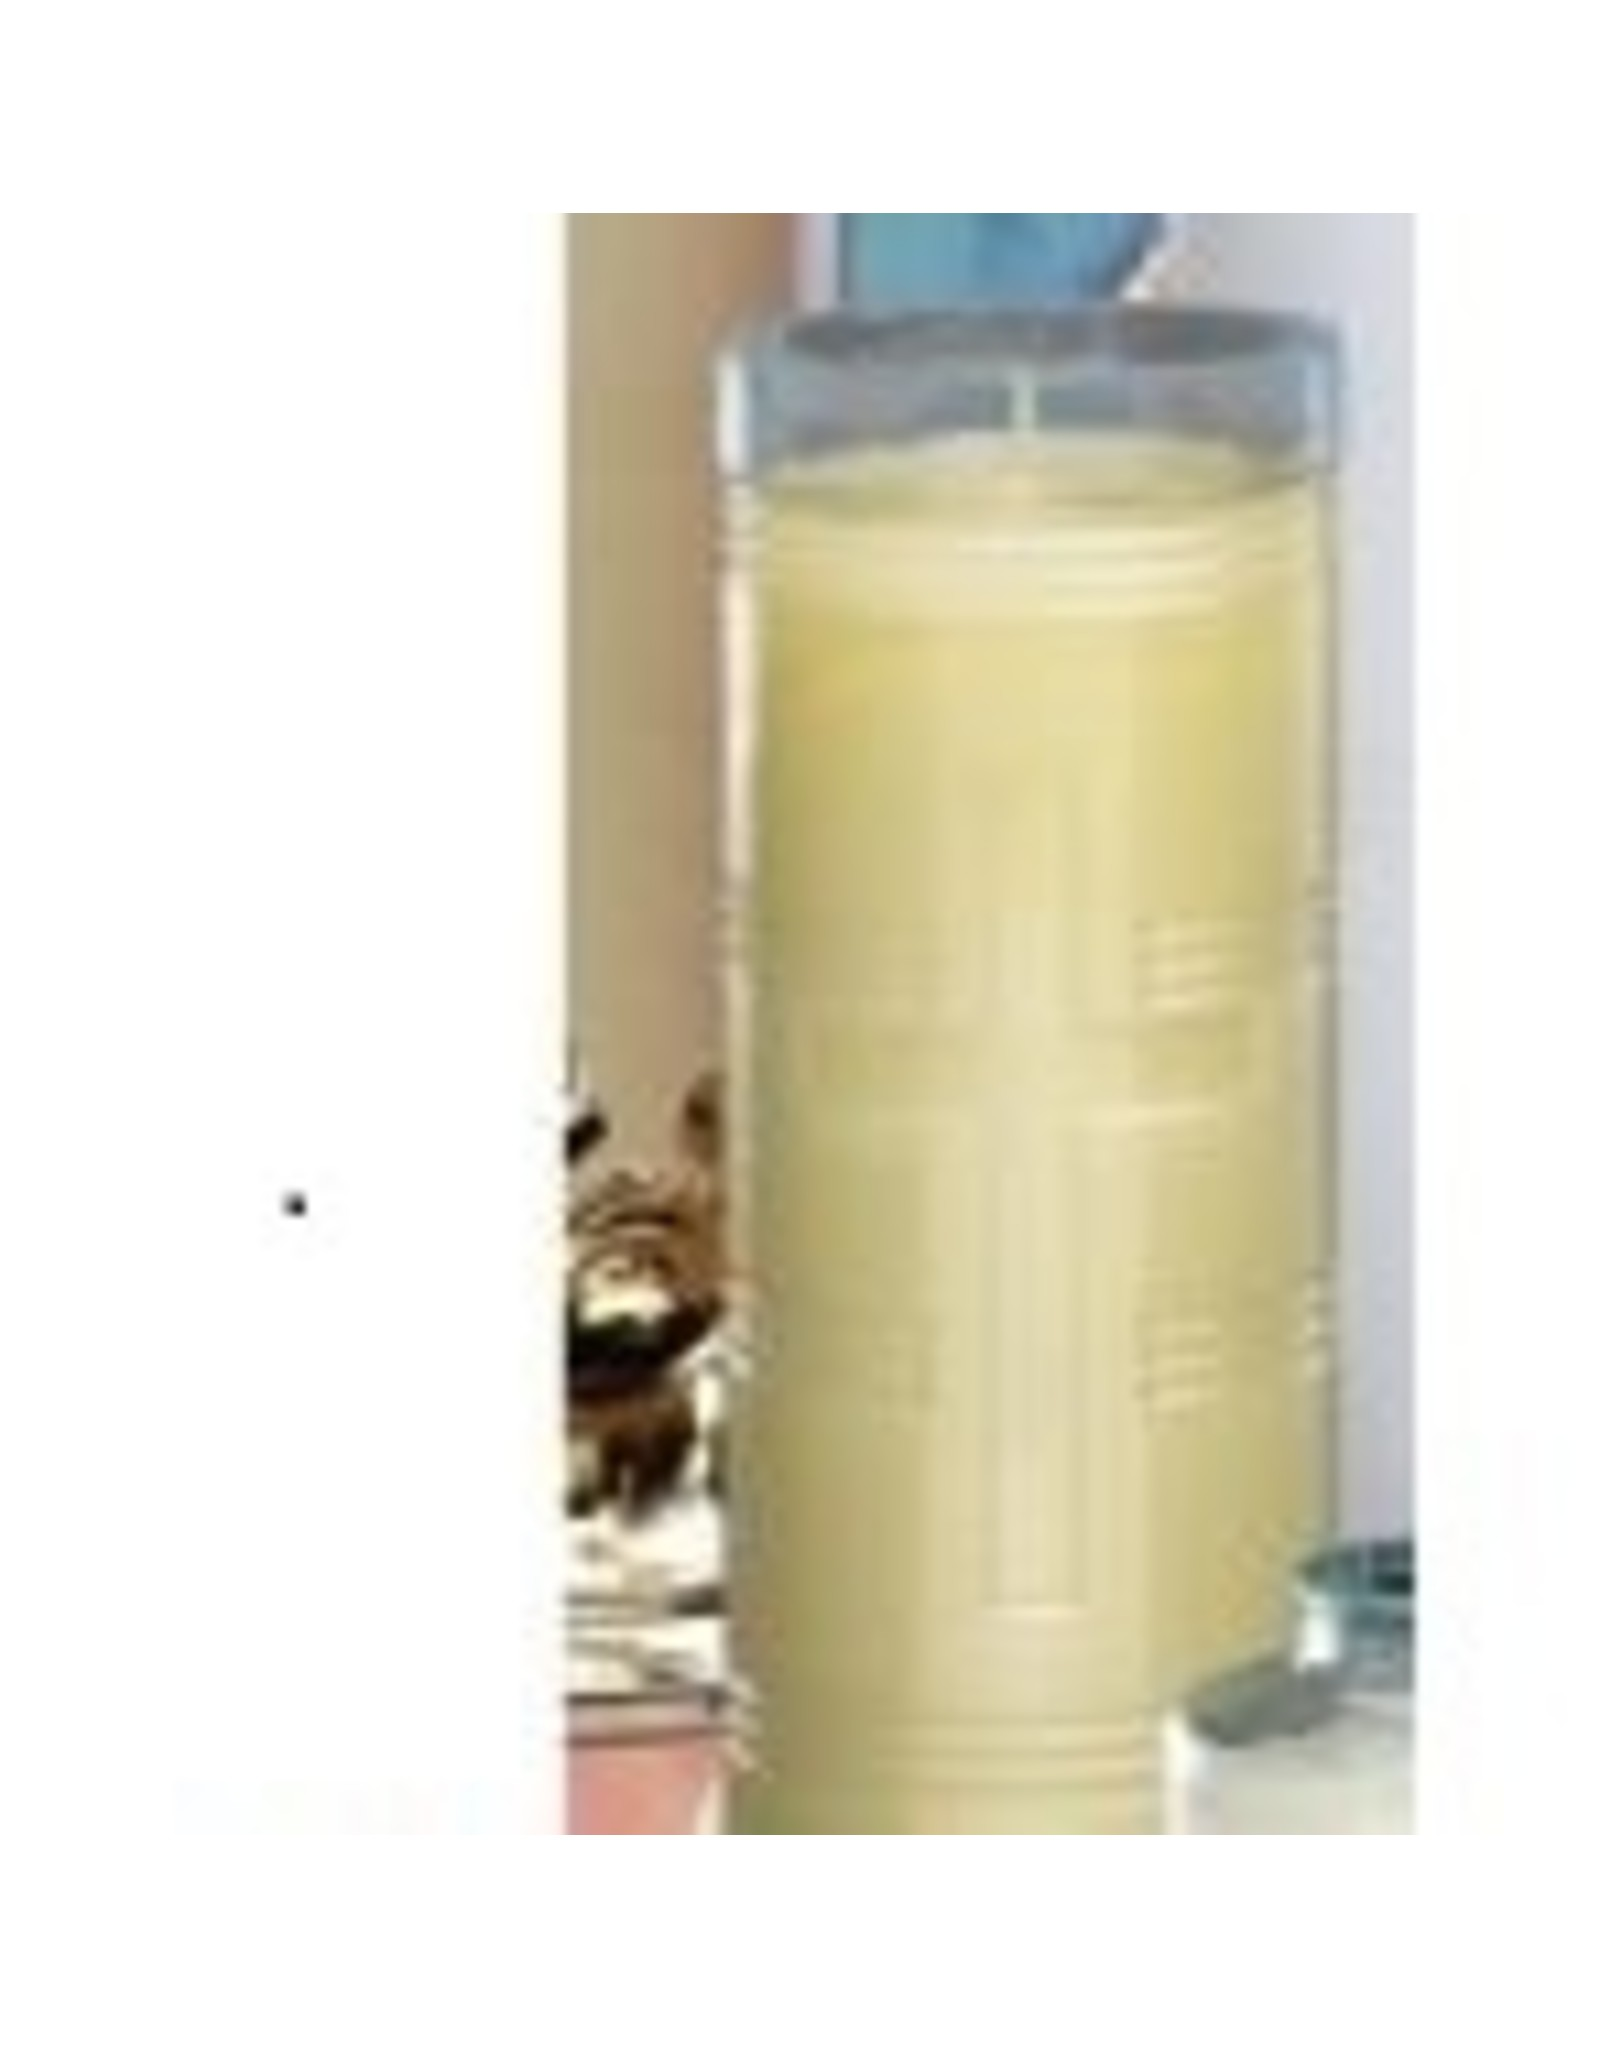 14-Day Plastic Candle - 51% Beeswax